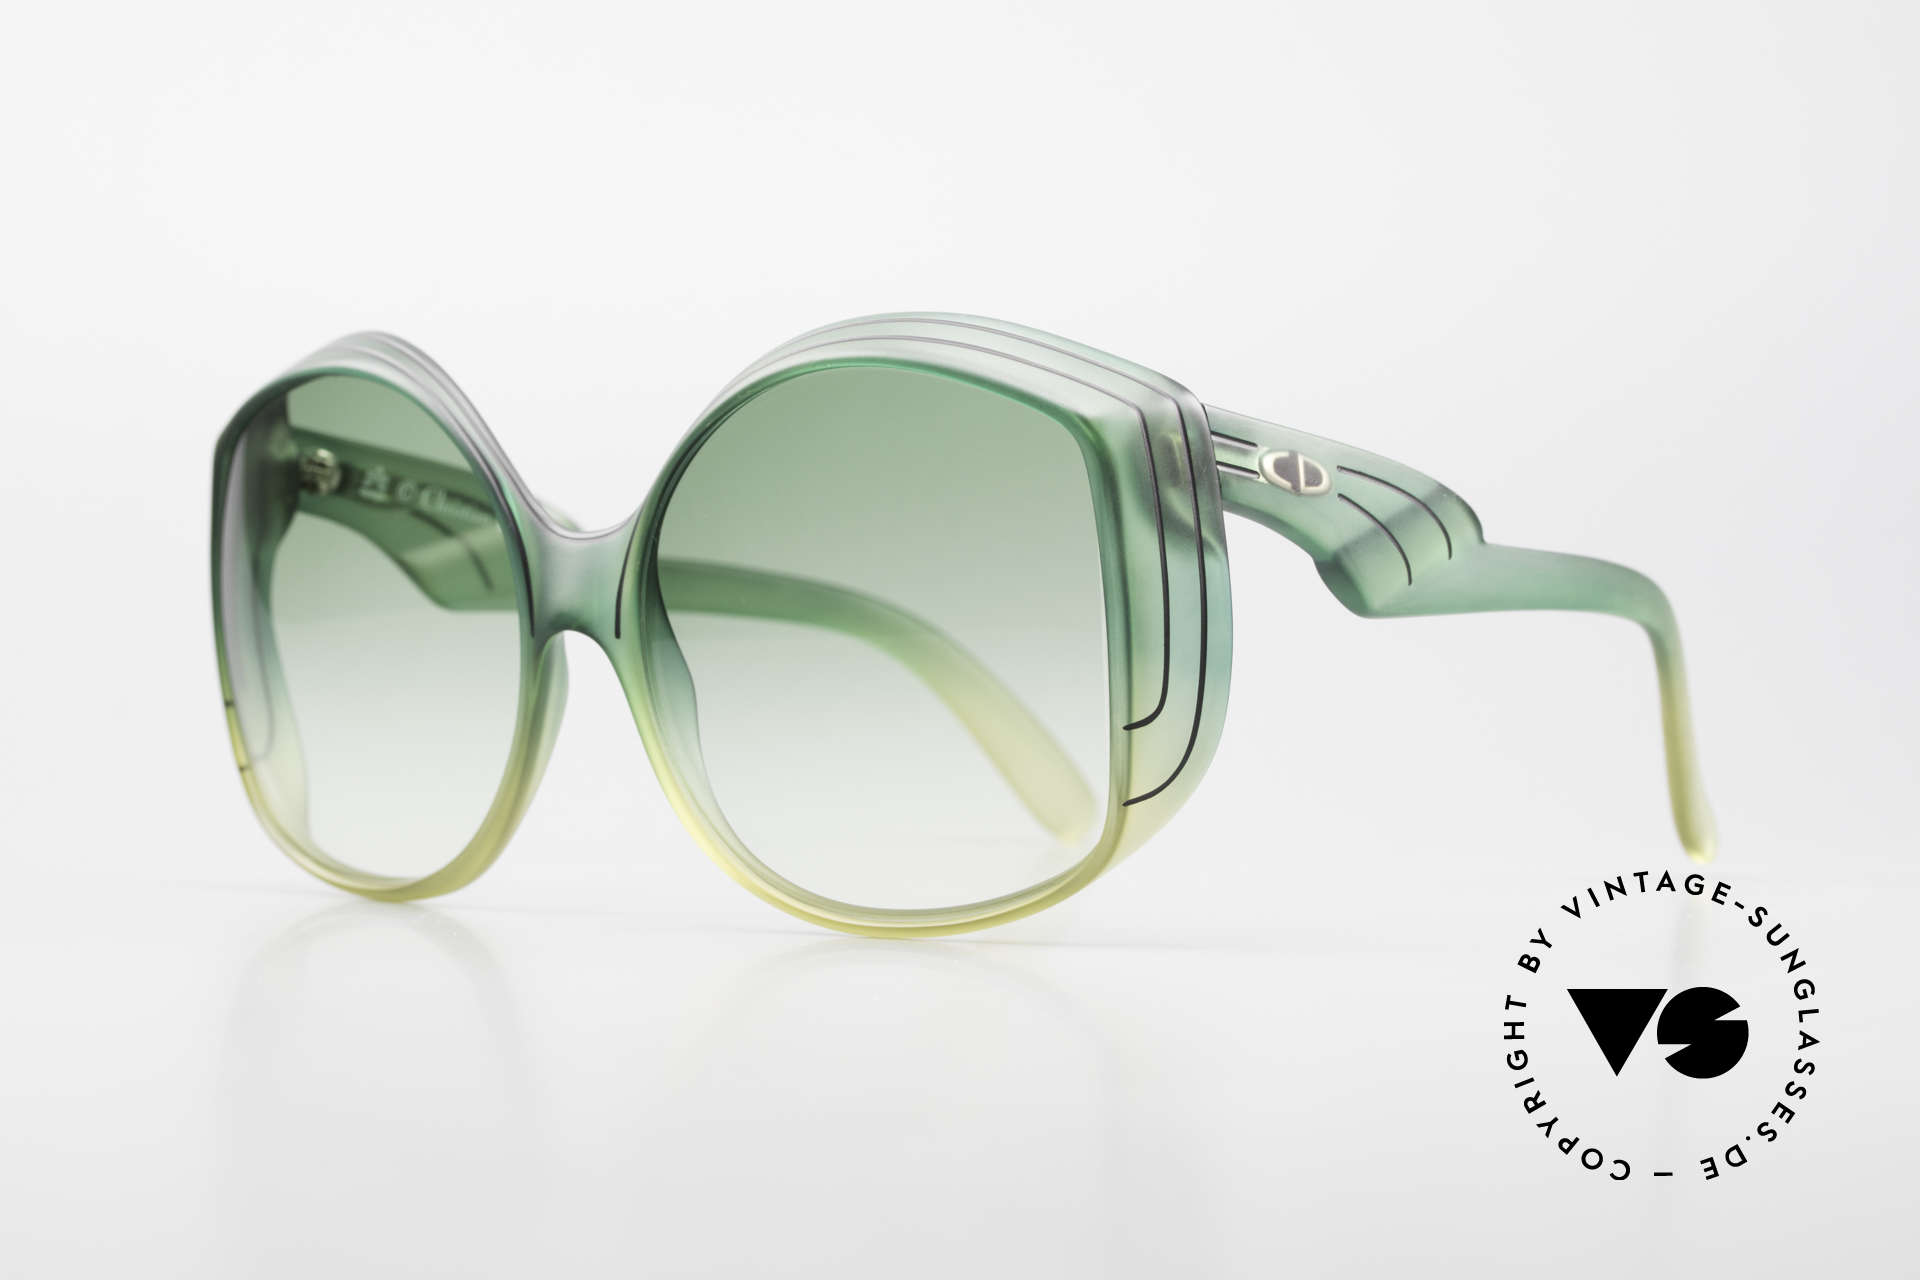 Christian Dior 2041 XXL 1970's Ladies Sunglasses, a real vintage rarity; one of a kind; a true eye-catcher!, Made for Women